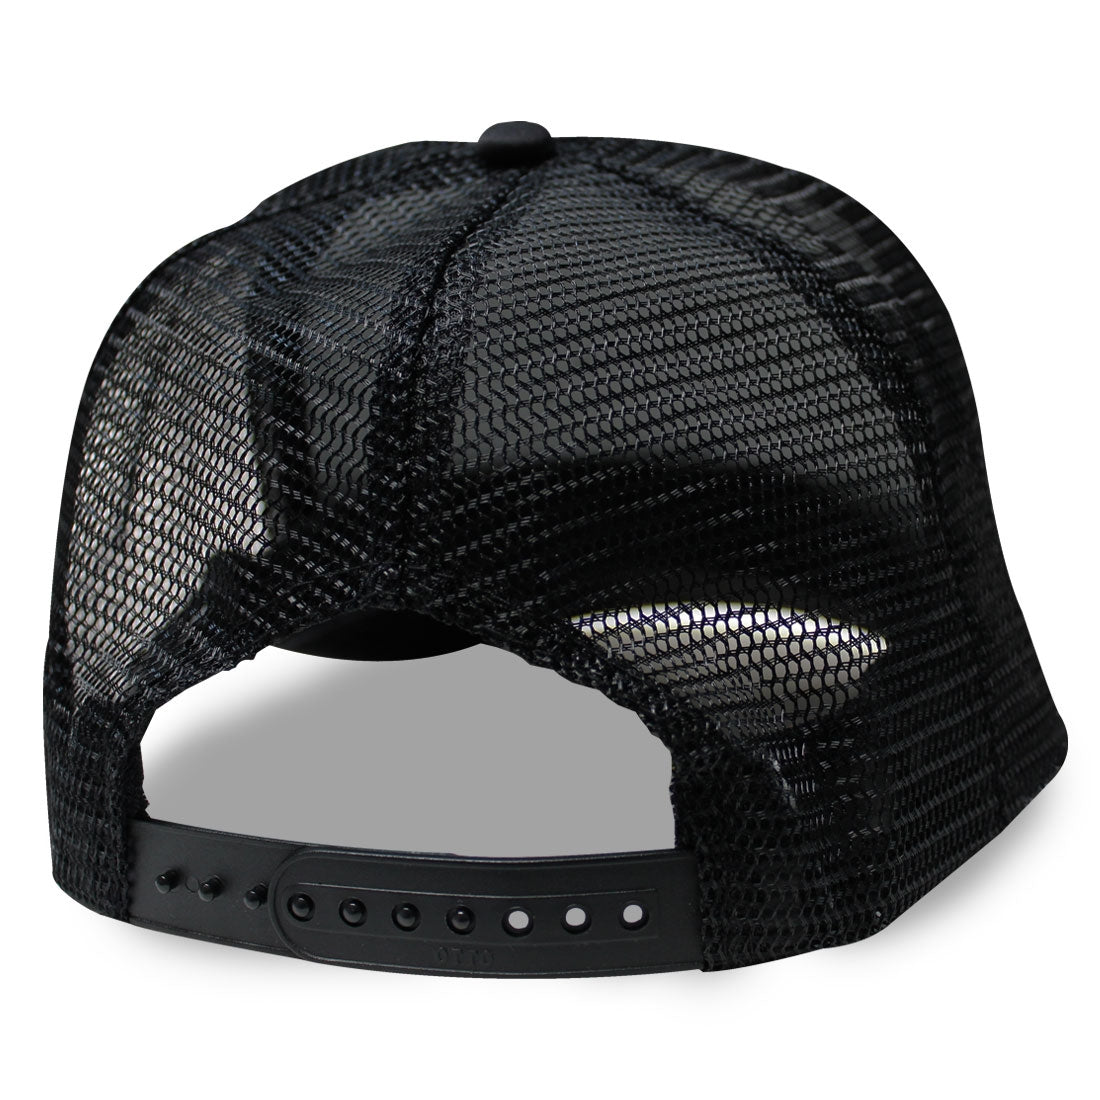 Pond Curved Bill Trucker Hat Black White Black Back View